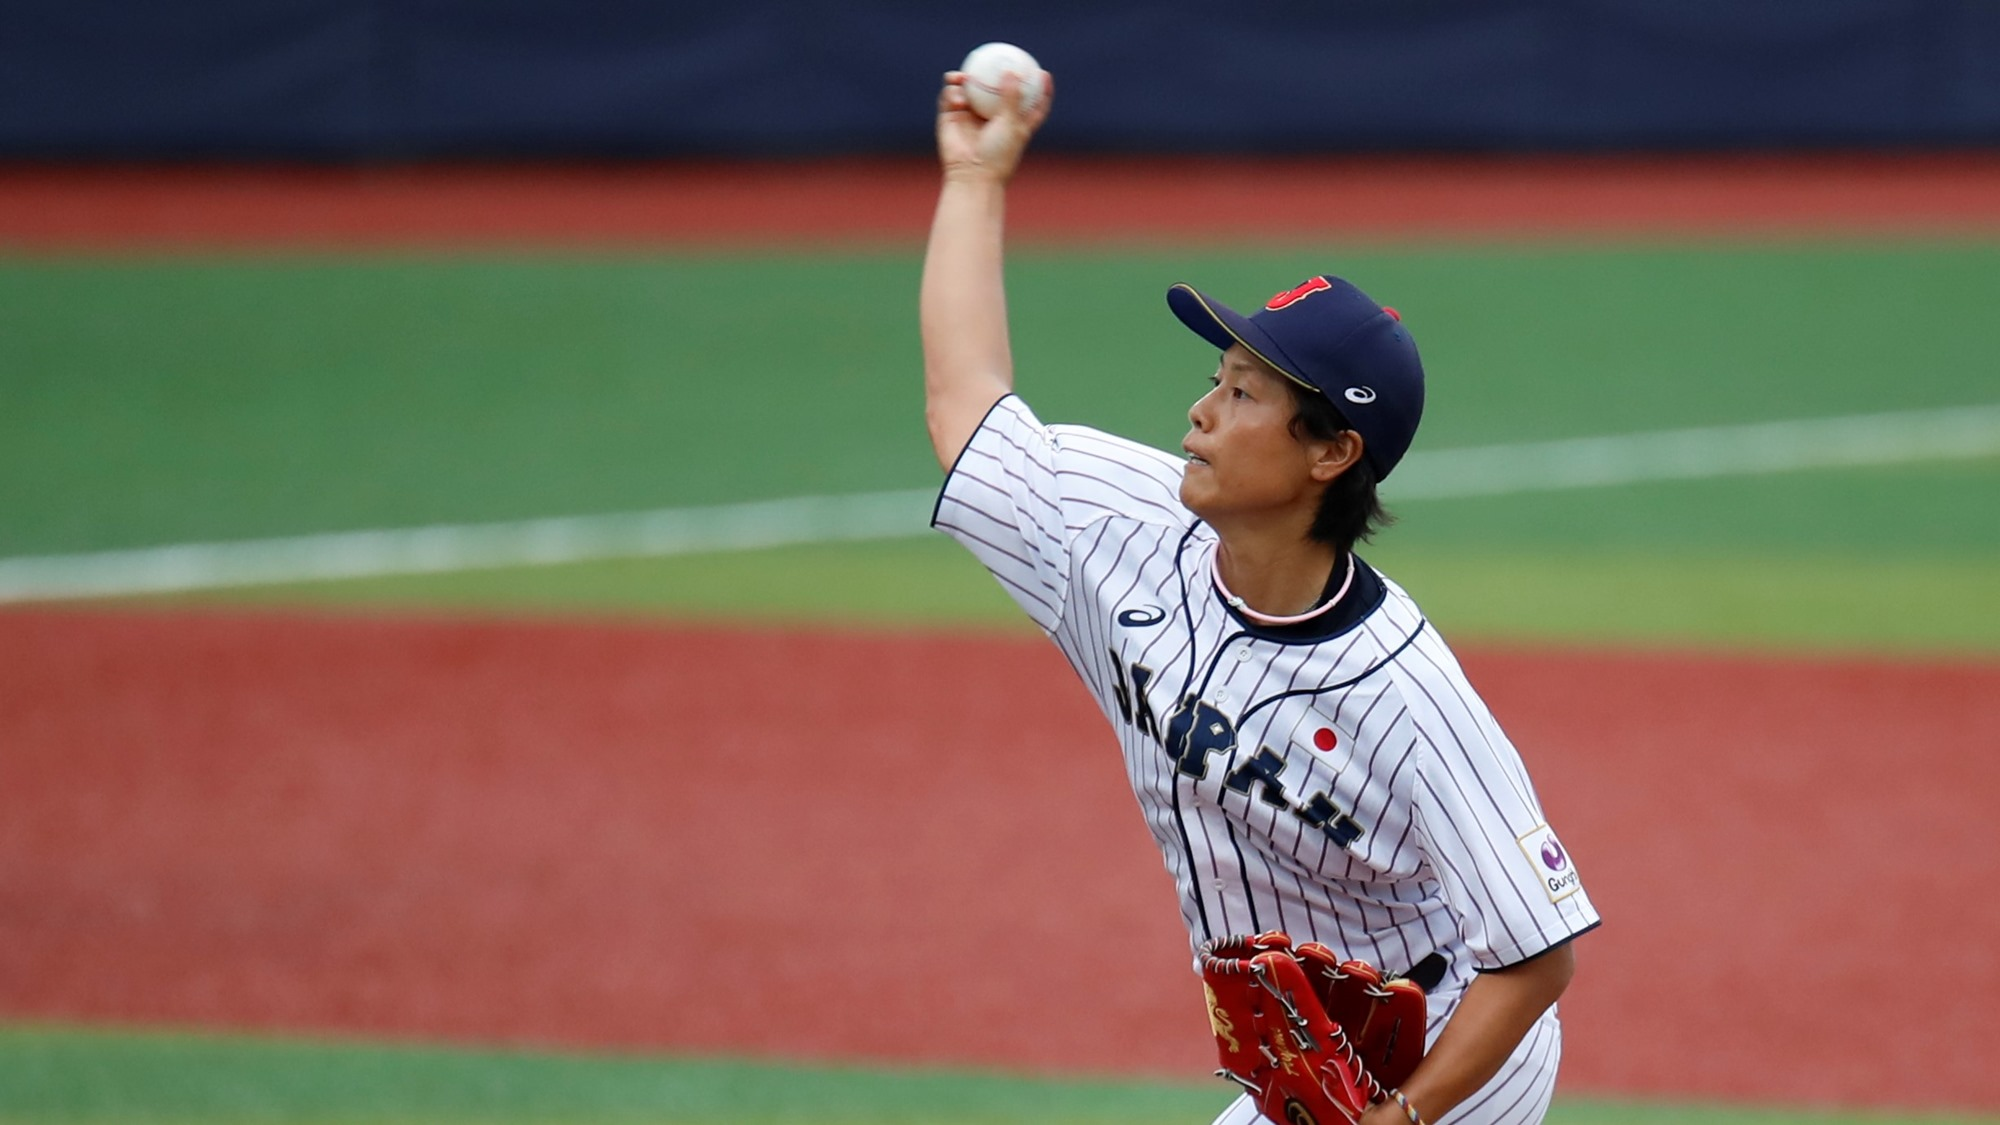 Ayami Sato pitched a gem for Japan